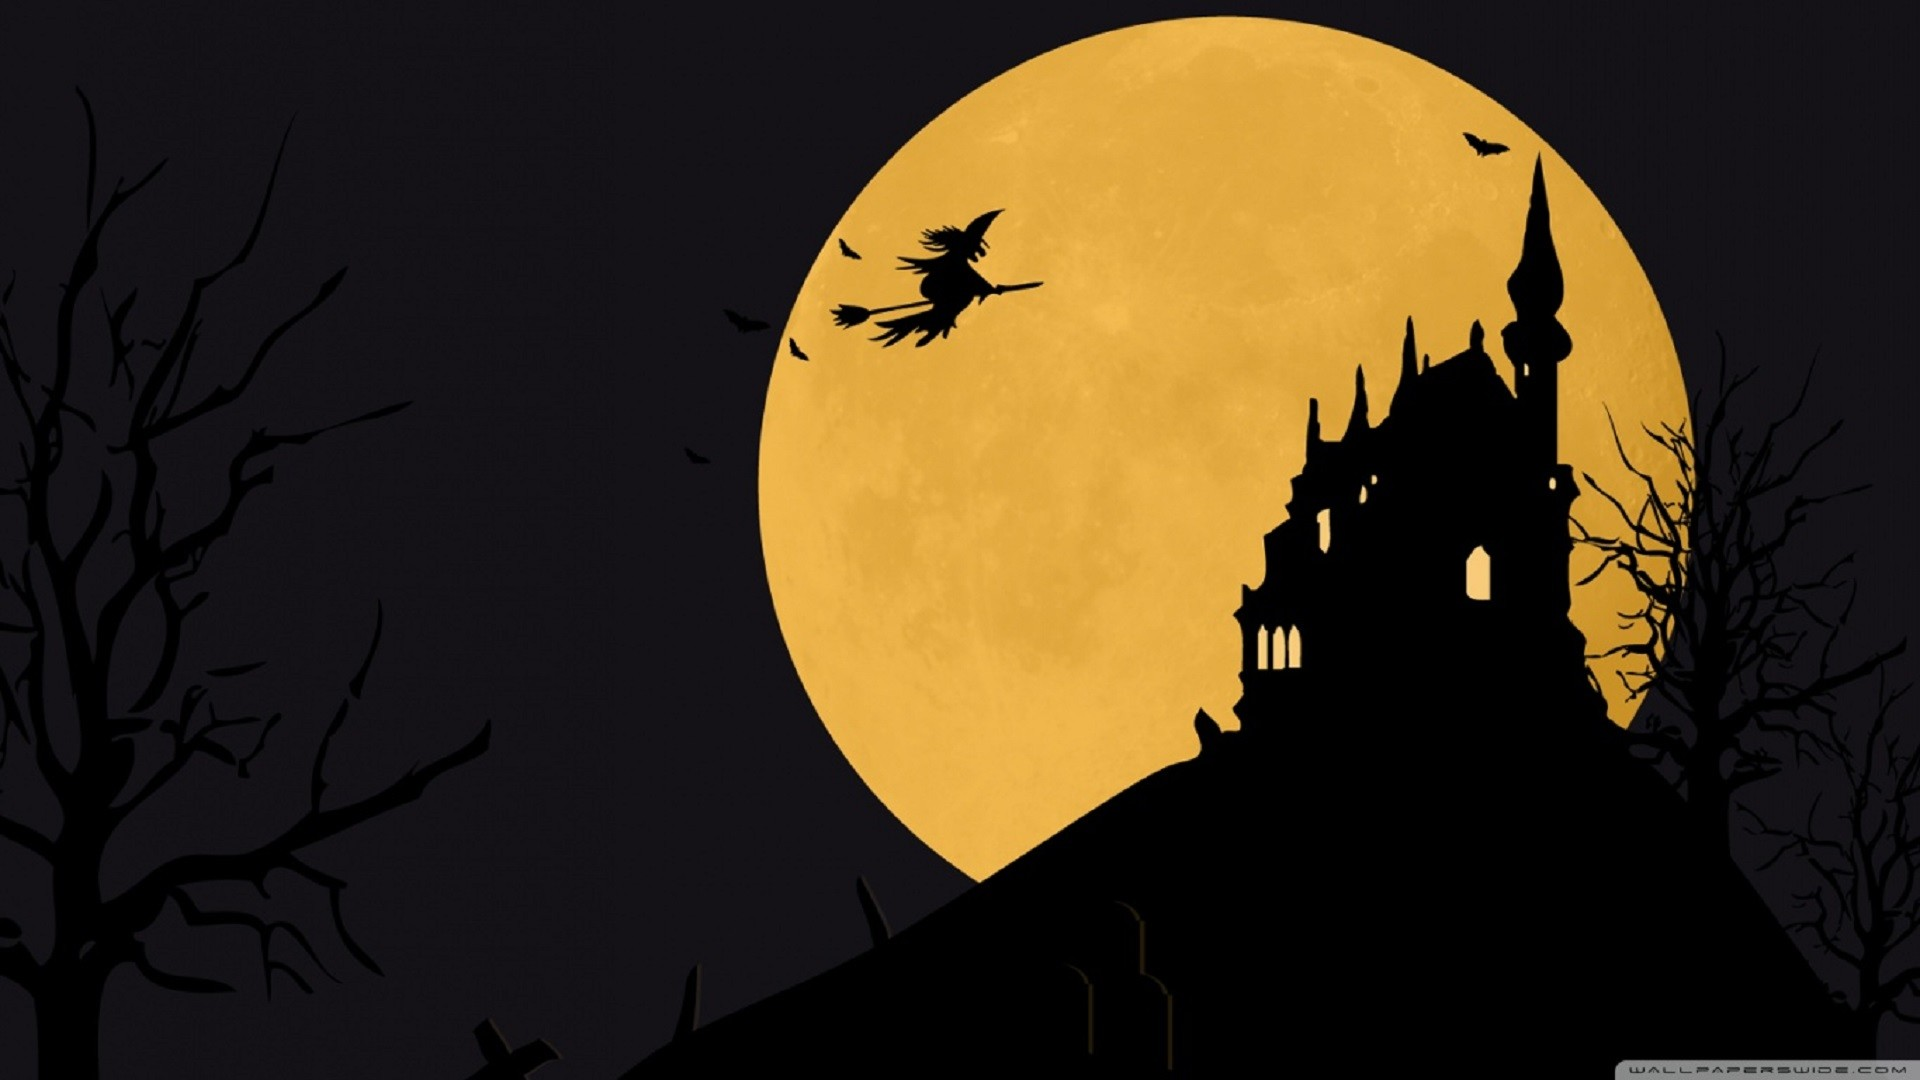 Res: 1920x1080, Stunning HD Wallpapers For Your Desktop #56: Happy Halloween Edition!